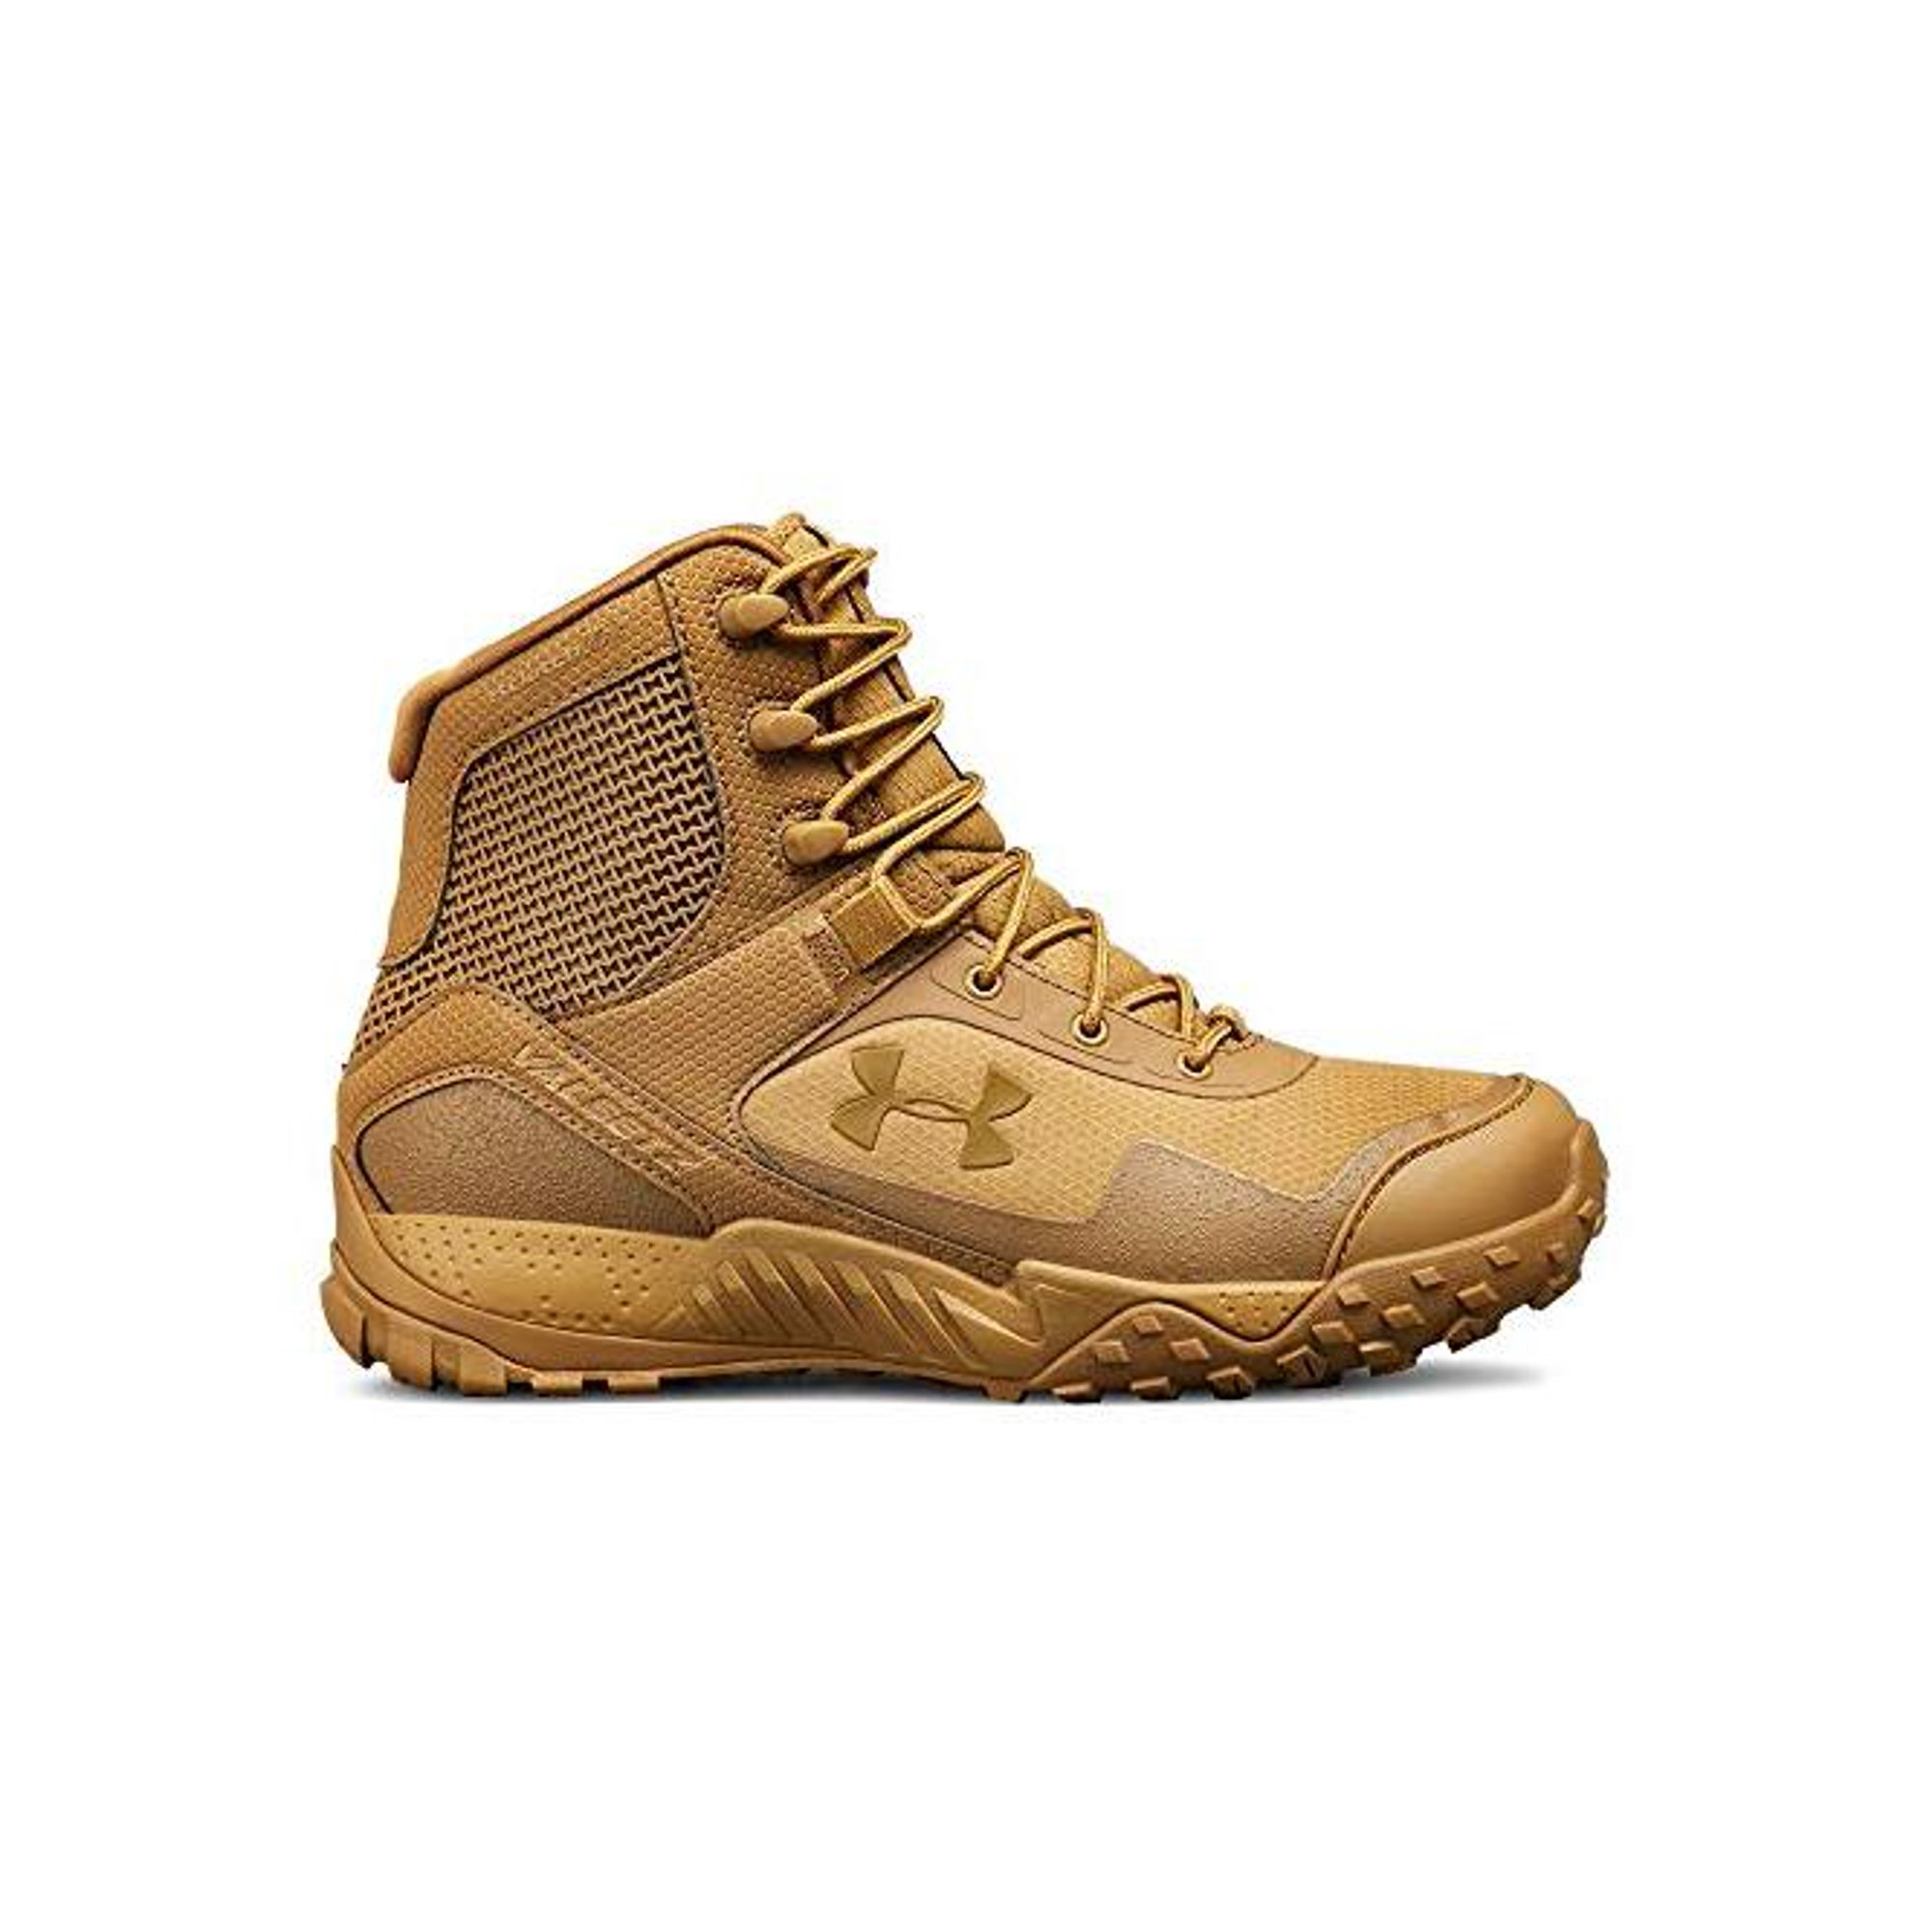 7e21e9cb5c2 Under Armour Women's Valsetz Rts 1.5 Military and Tactical Boot ...